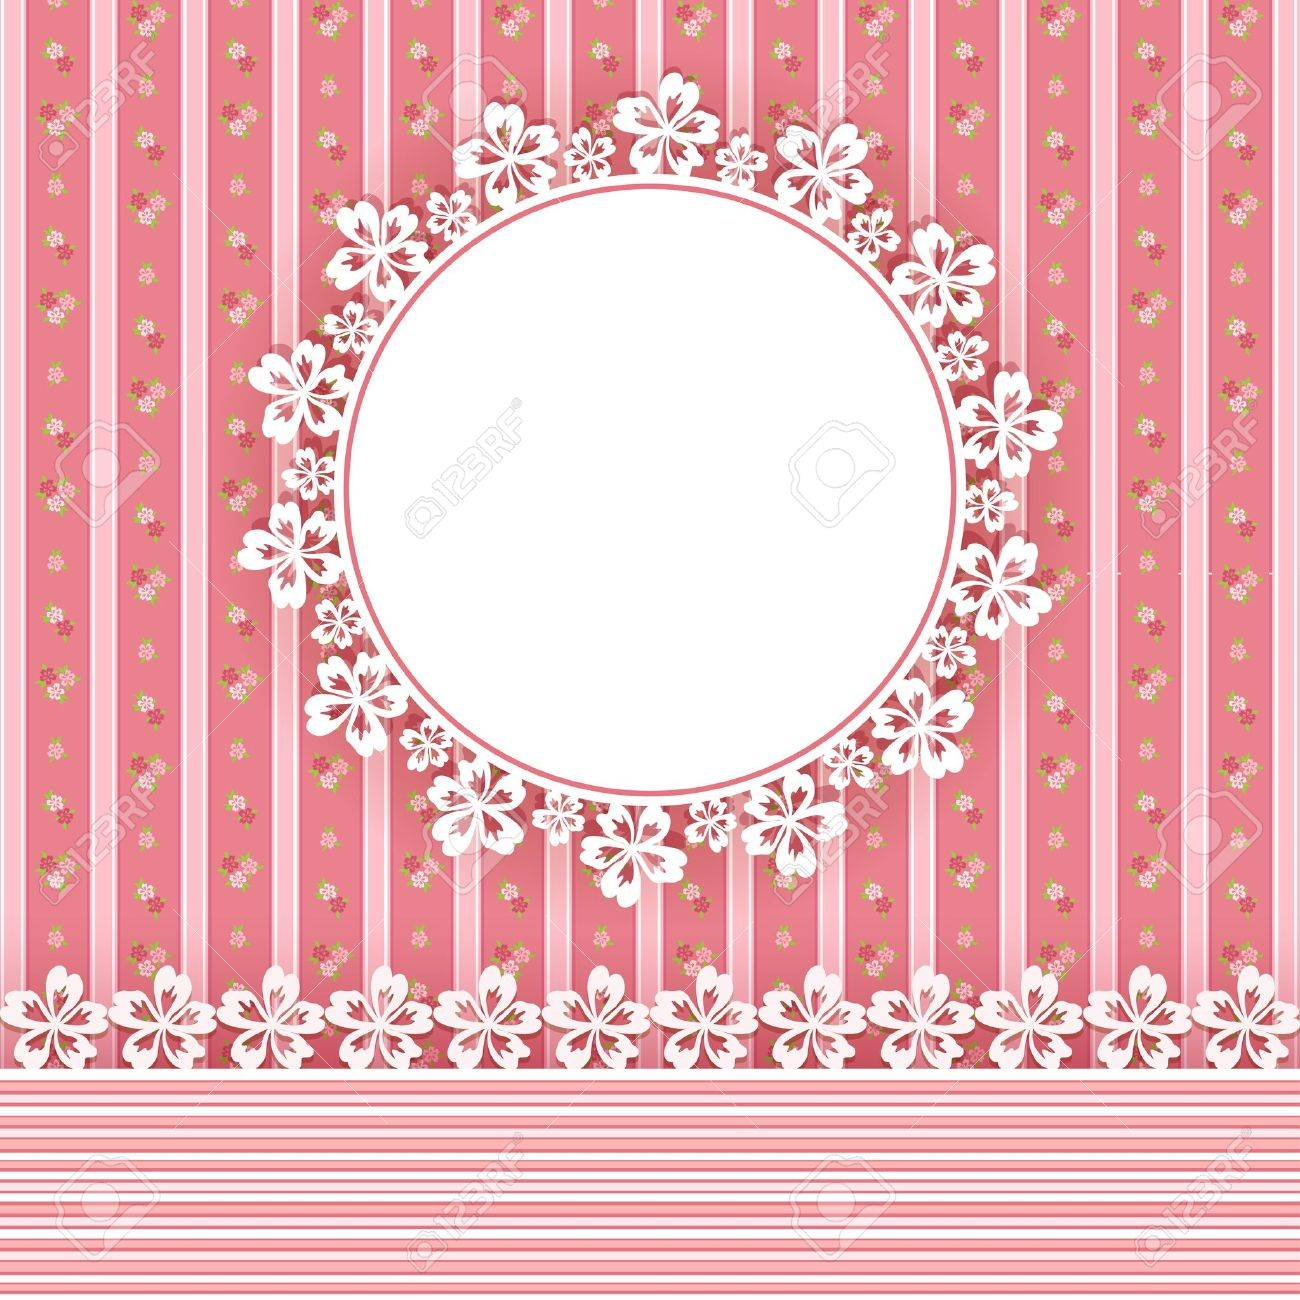 Floral background with frame  Vector illustration Stock Vector - 18253918